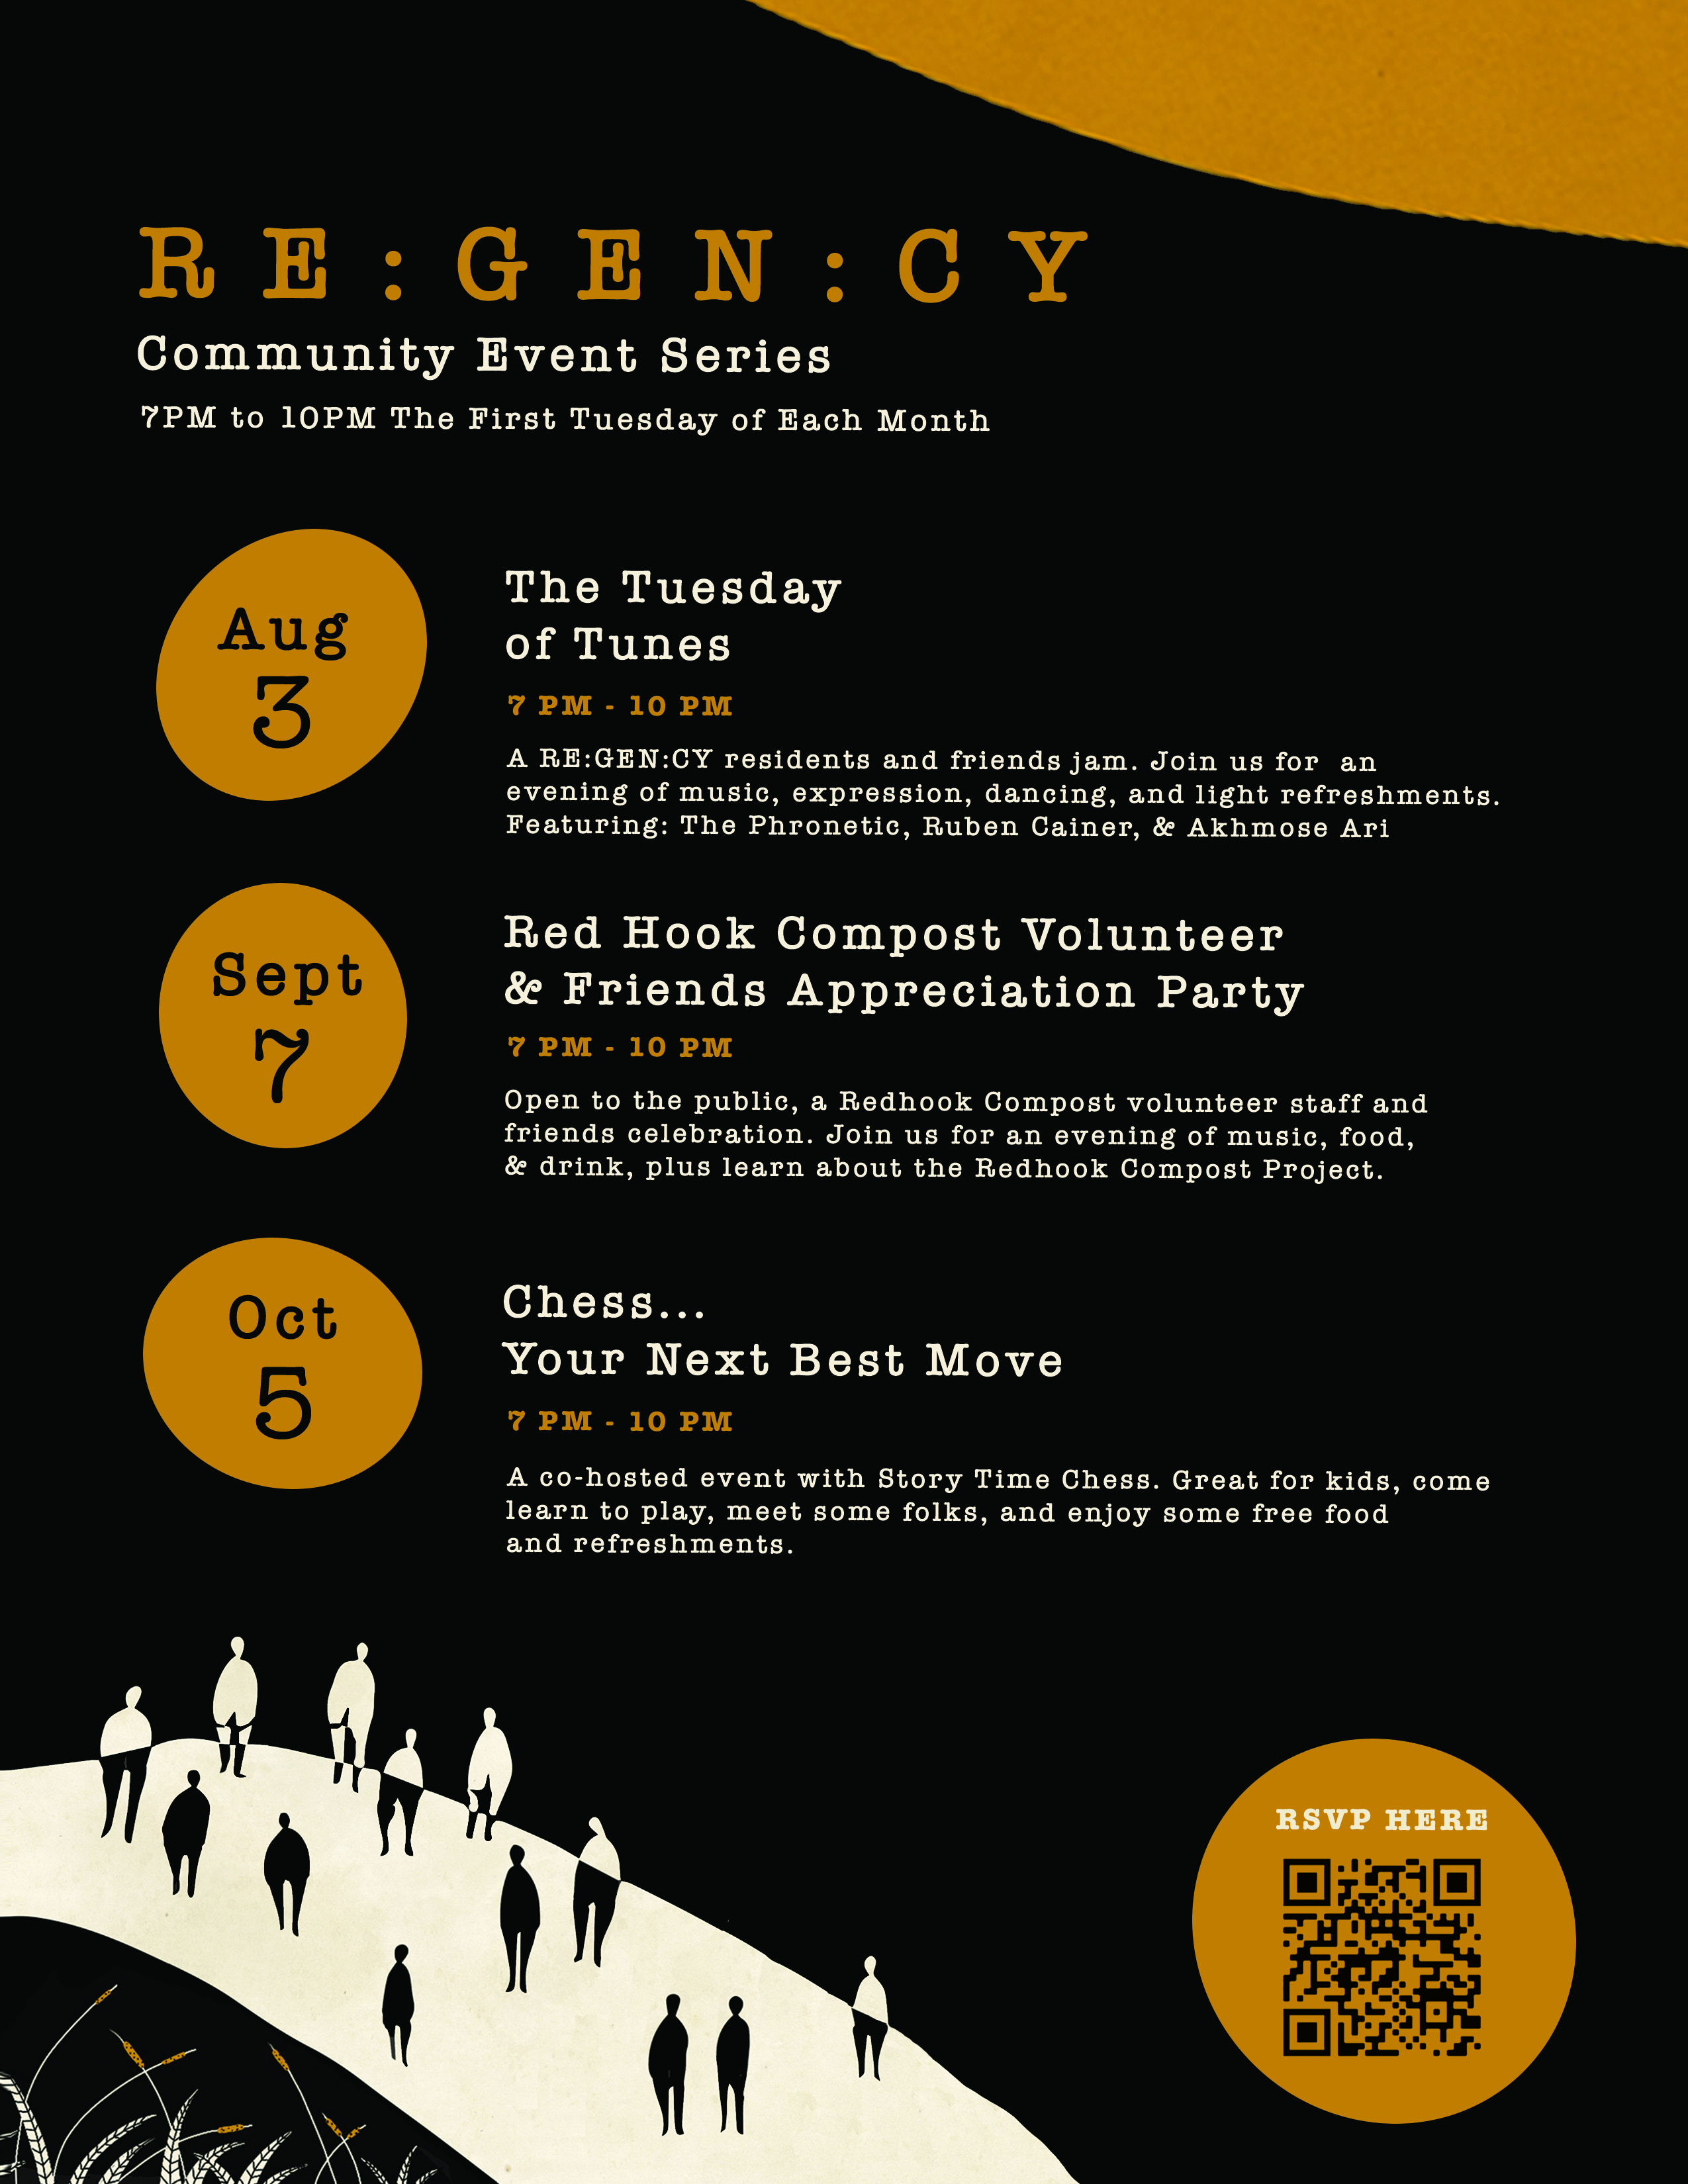 Regency community space hosting a series of events on the first Tuesday celebrating music regeneration and community